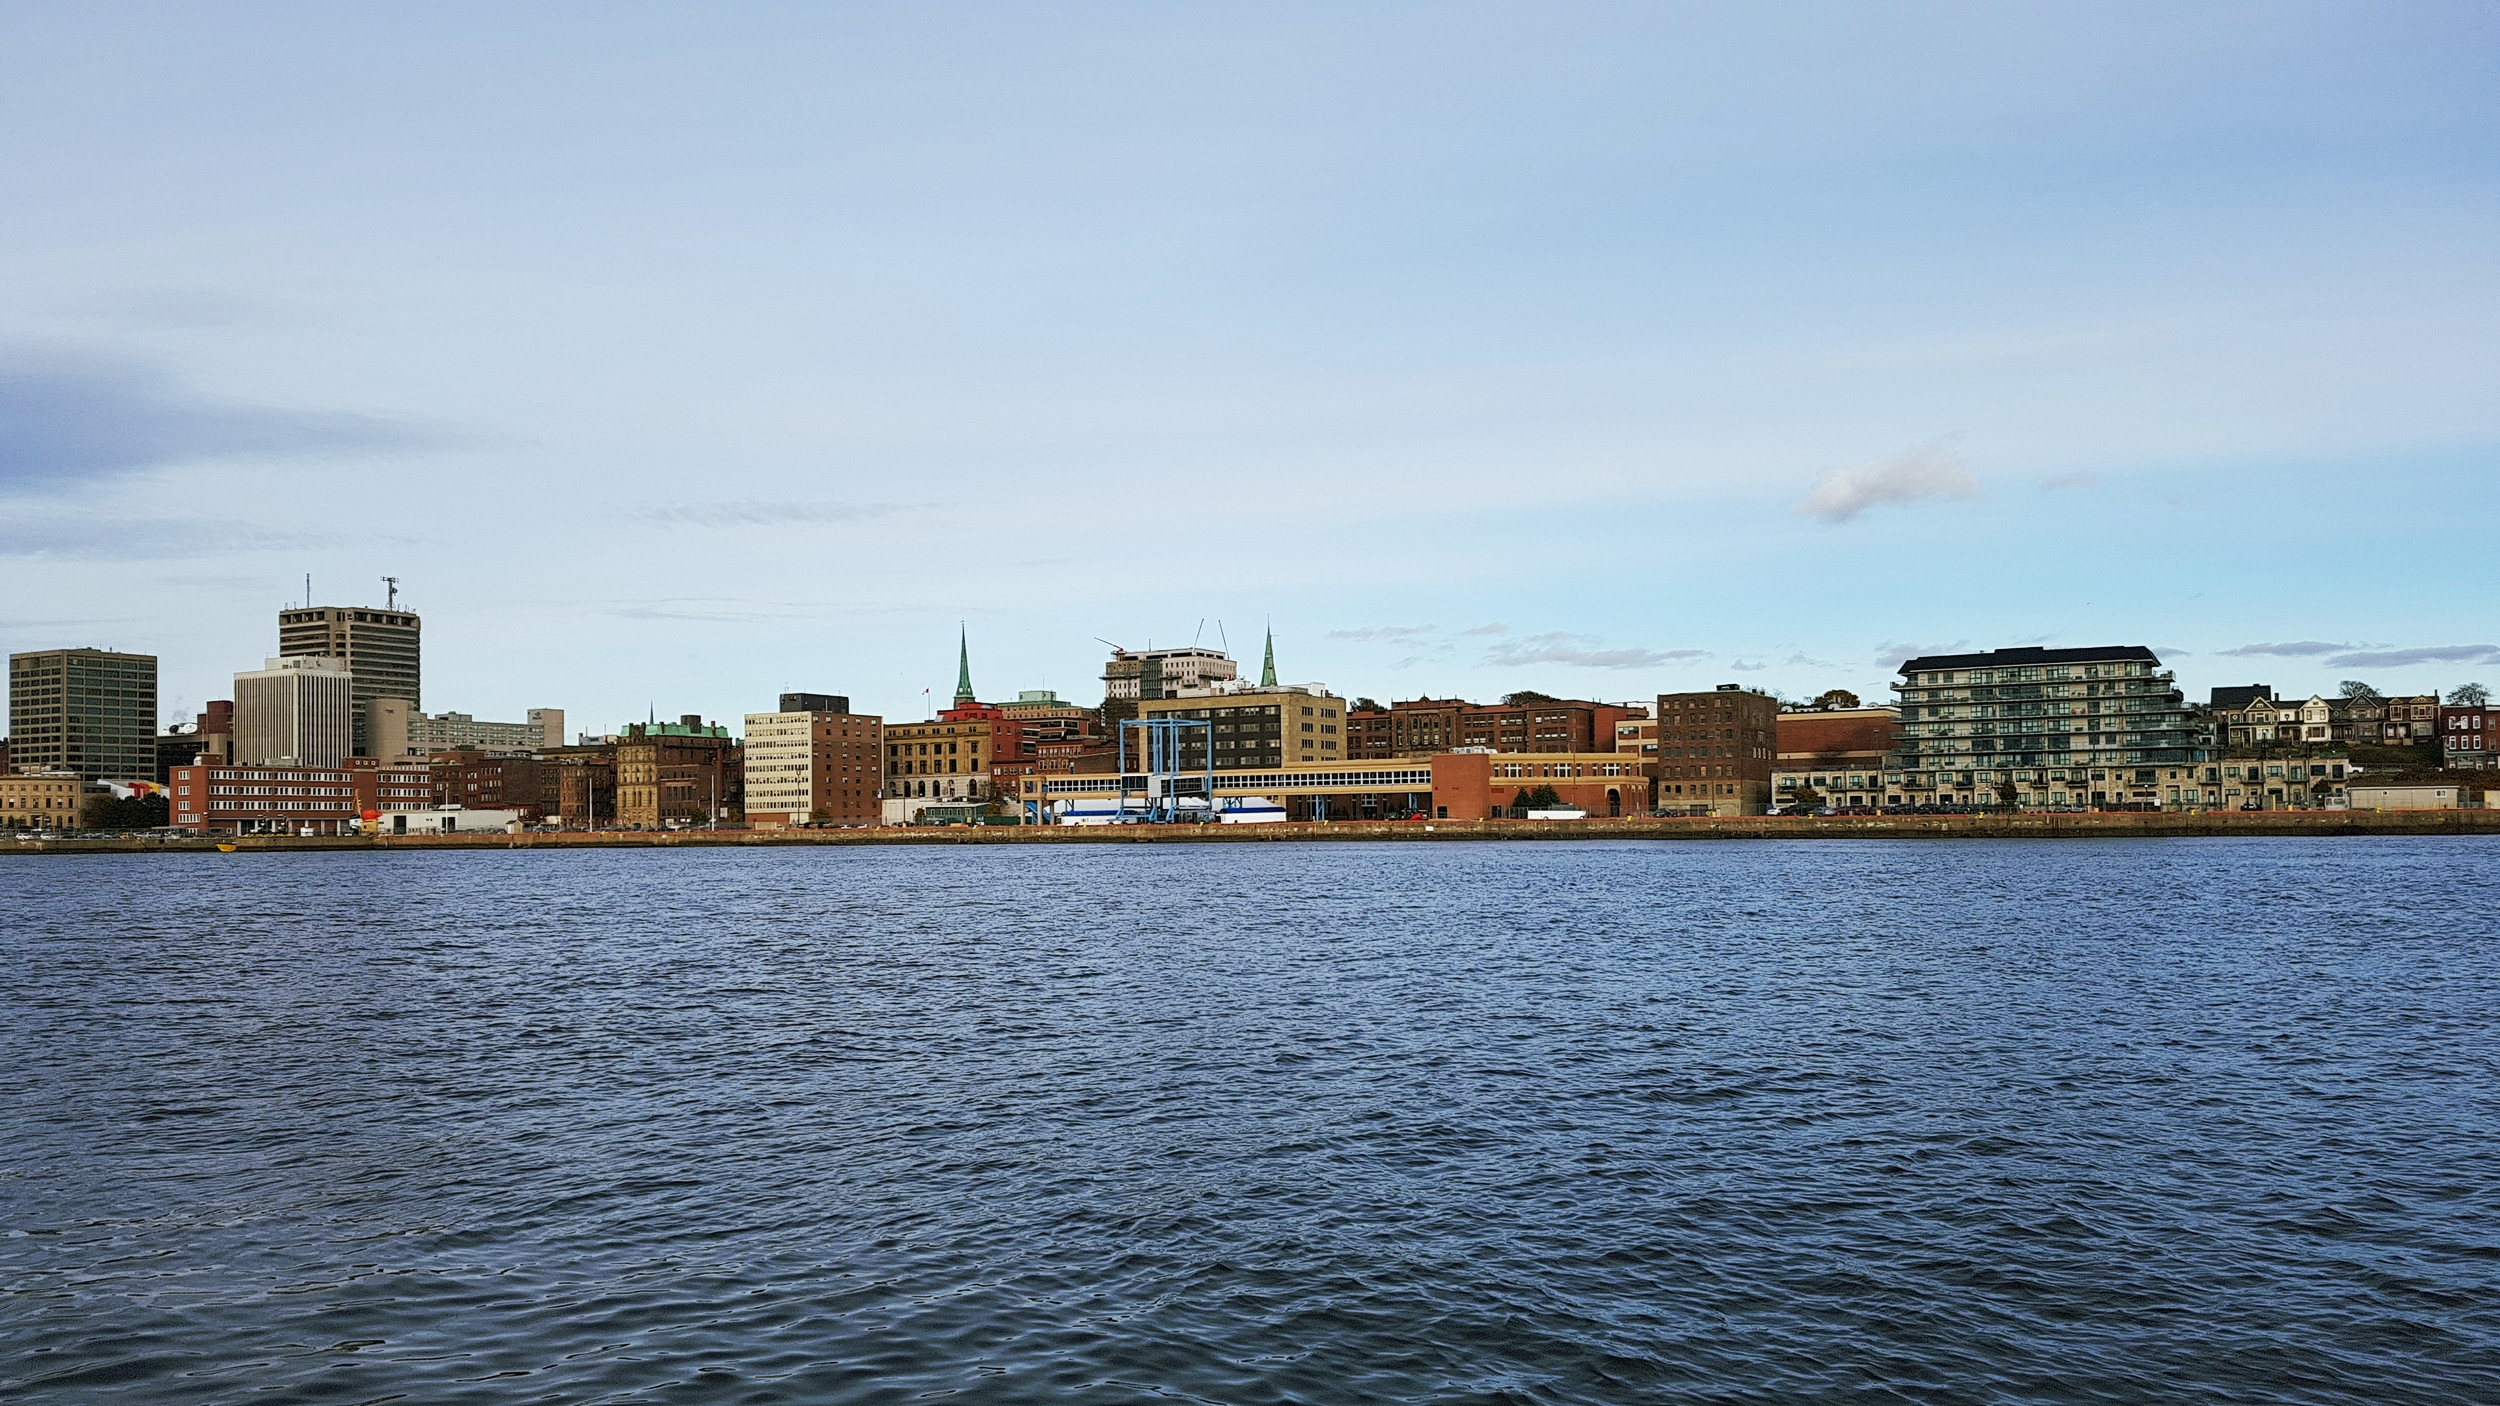 A view of uptown from the Harbour